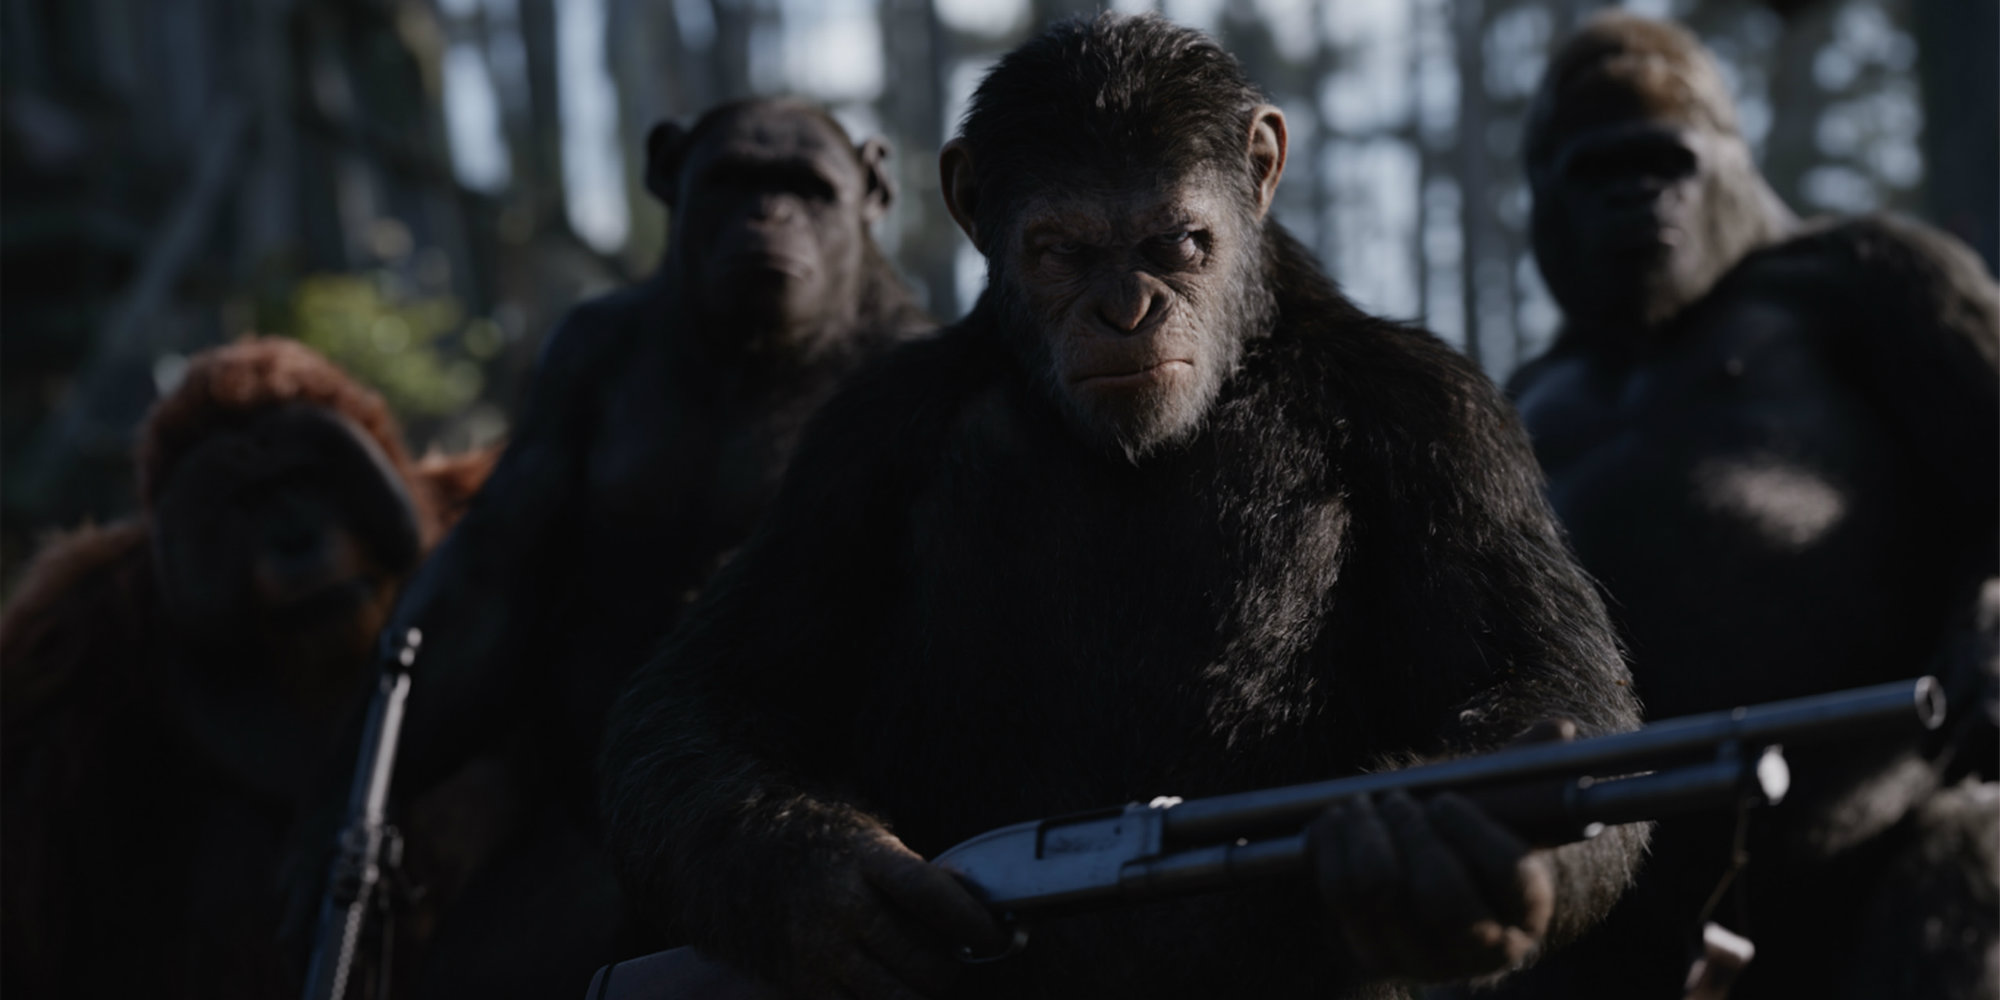 Final War for the Planet of the Apes Trailer | Screen Rant